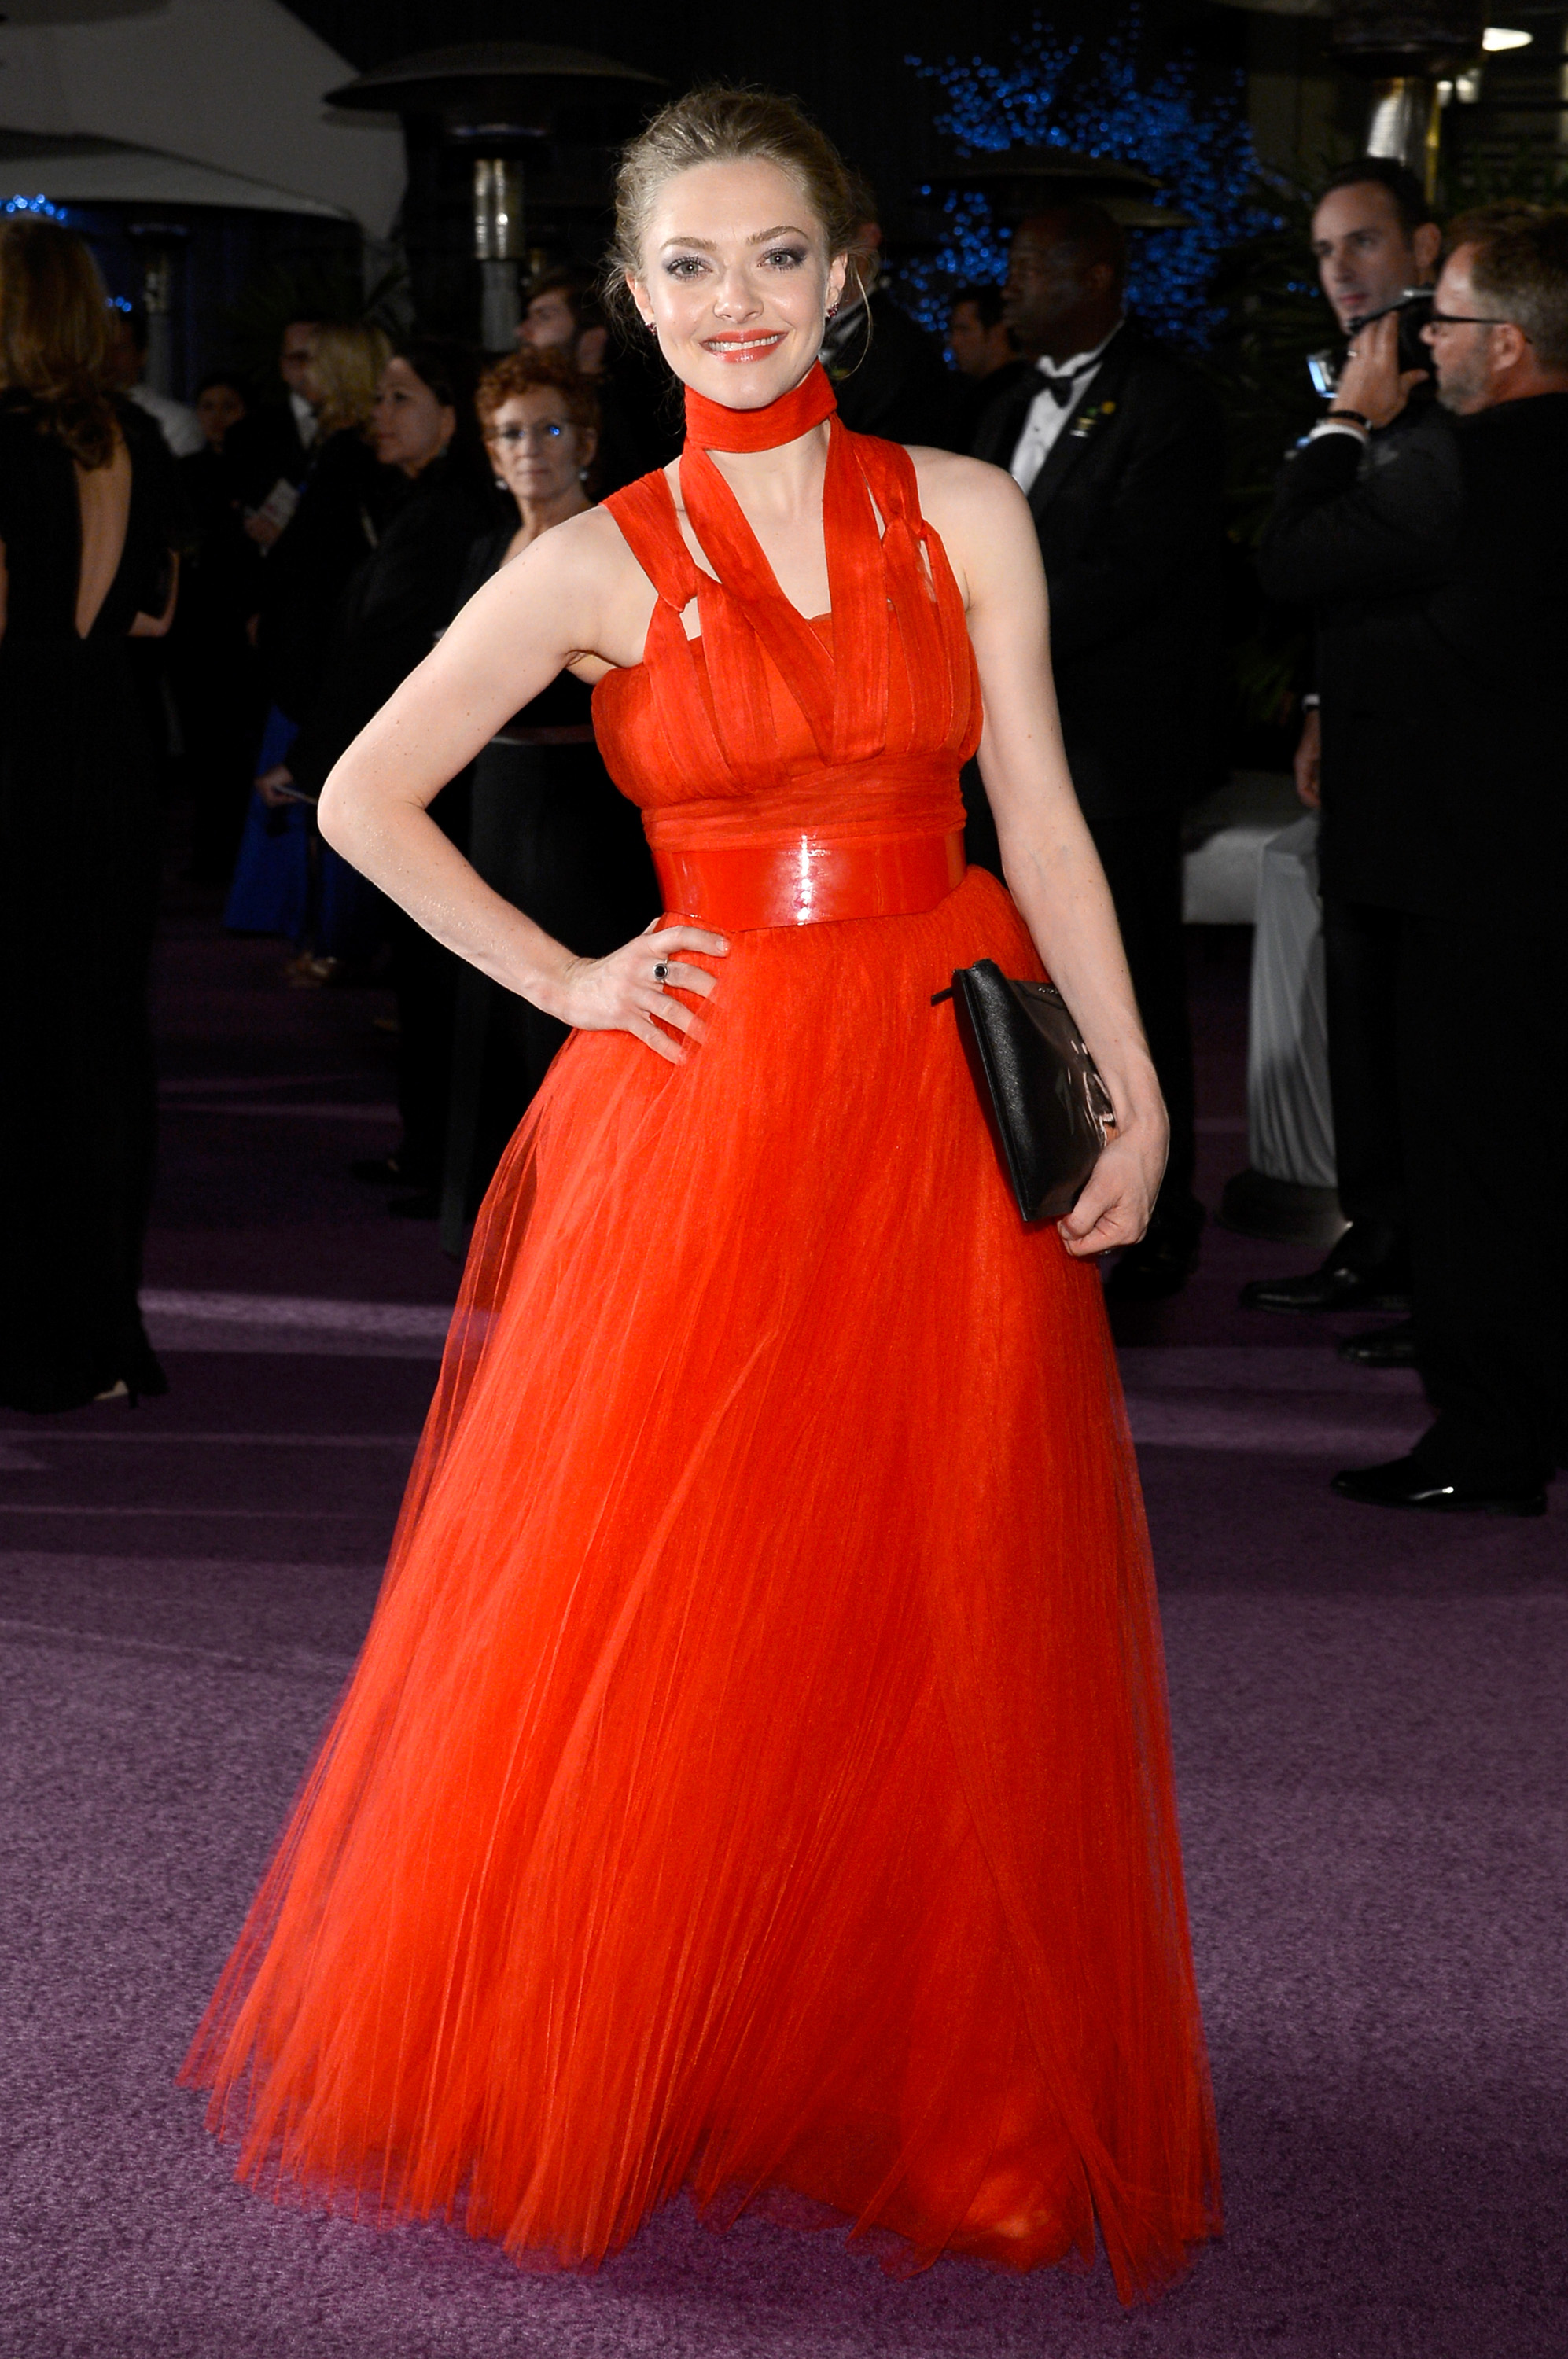 Amanda Seyfried wore a long red gown to the Governors Ball.